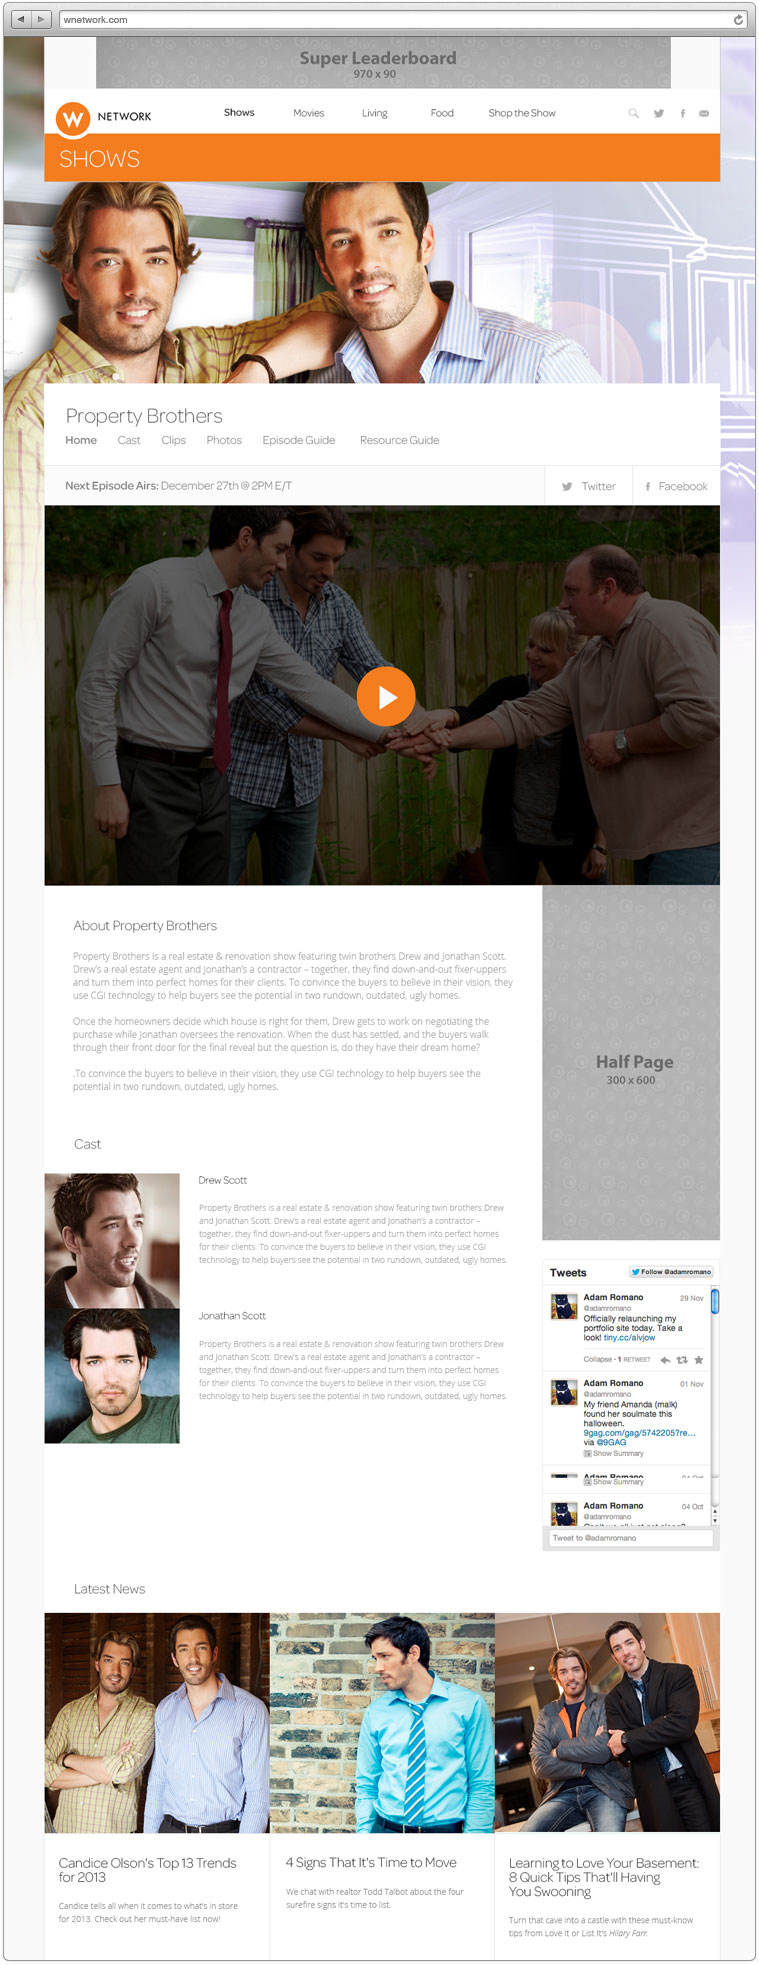 The desktop design of the Property Brothers show page. Every show has its own place to feature videos, images and information about the show, it's cast and creators.